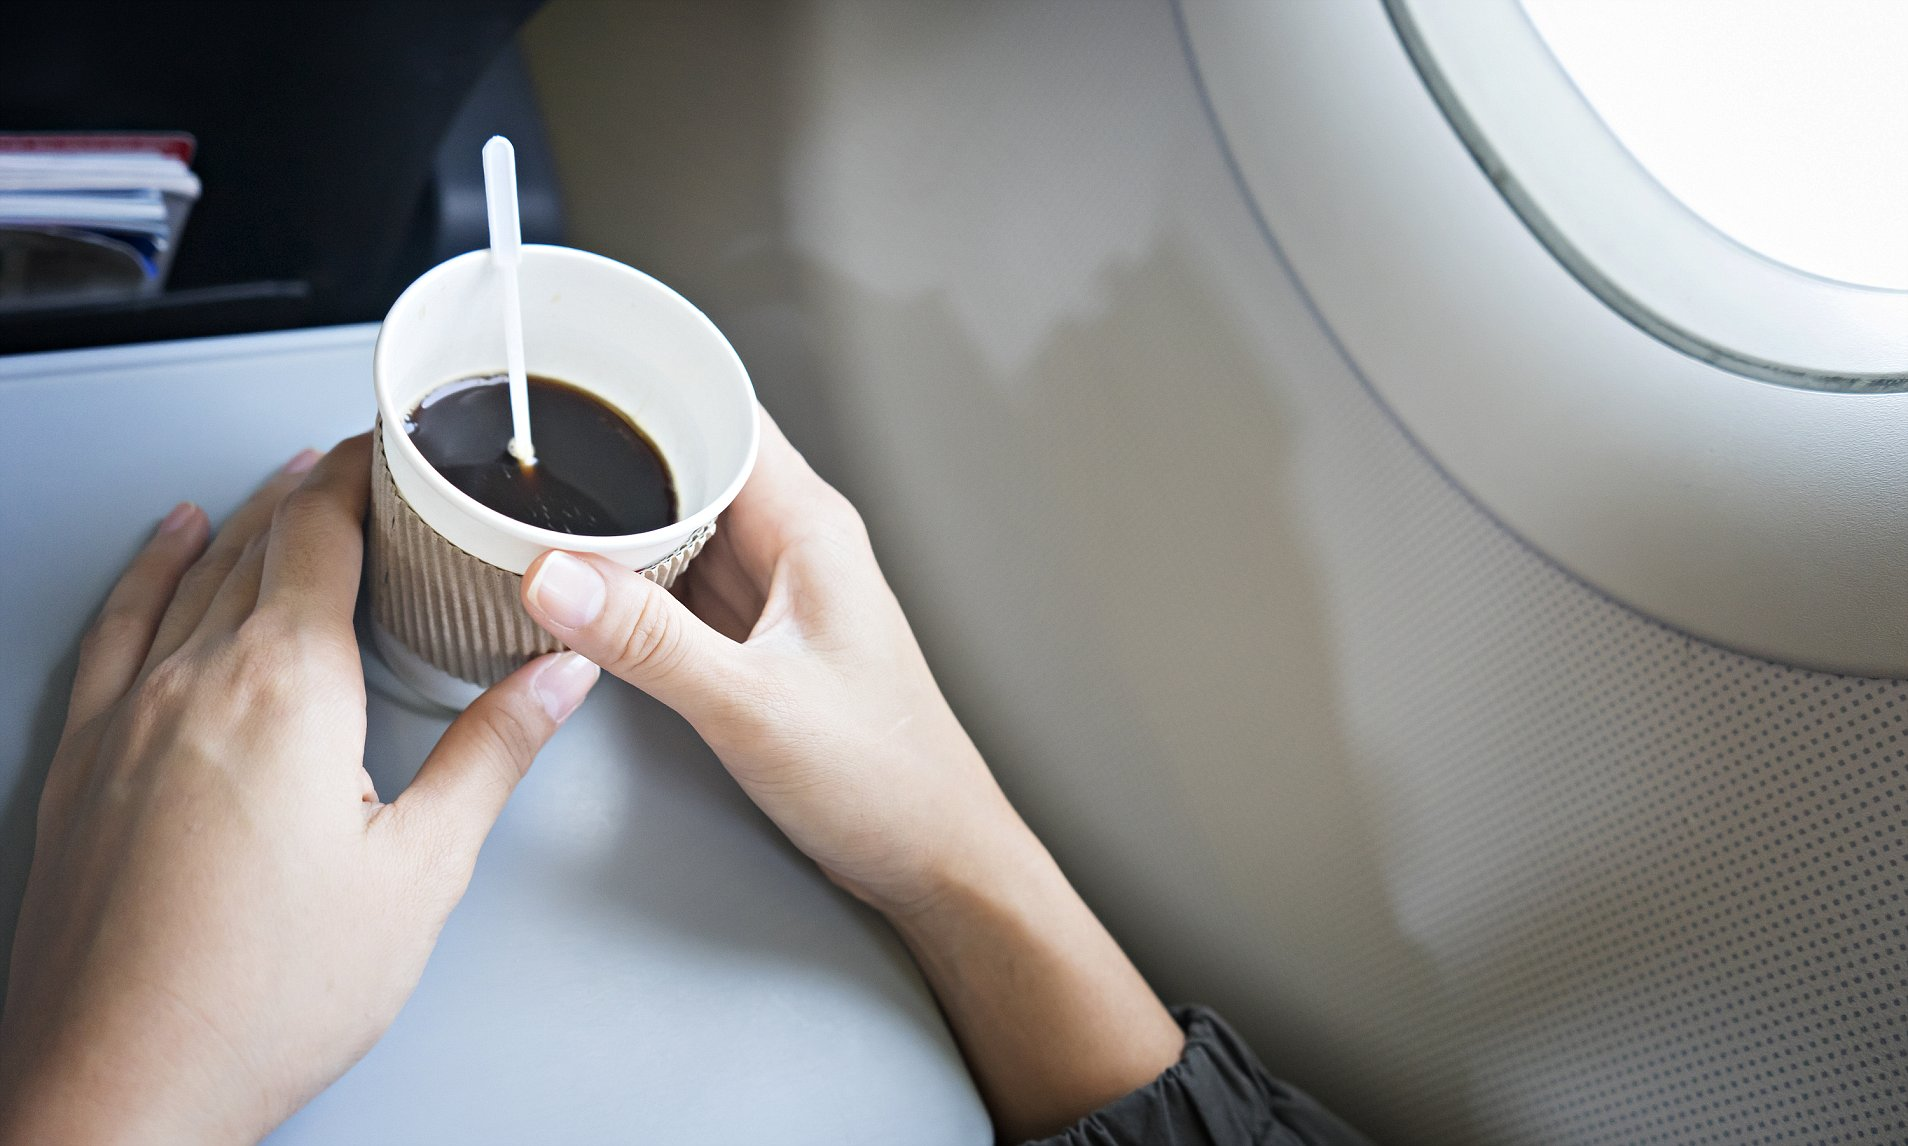 Woman drinking coffee on airplane.Woman hand holding white paper cup of hot coffee on the airplane. ; Shutterstock ID 726590566; Purchase Order: -